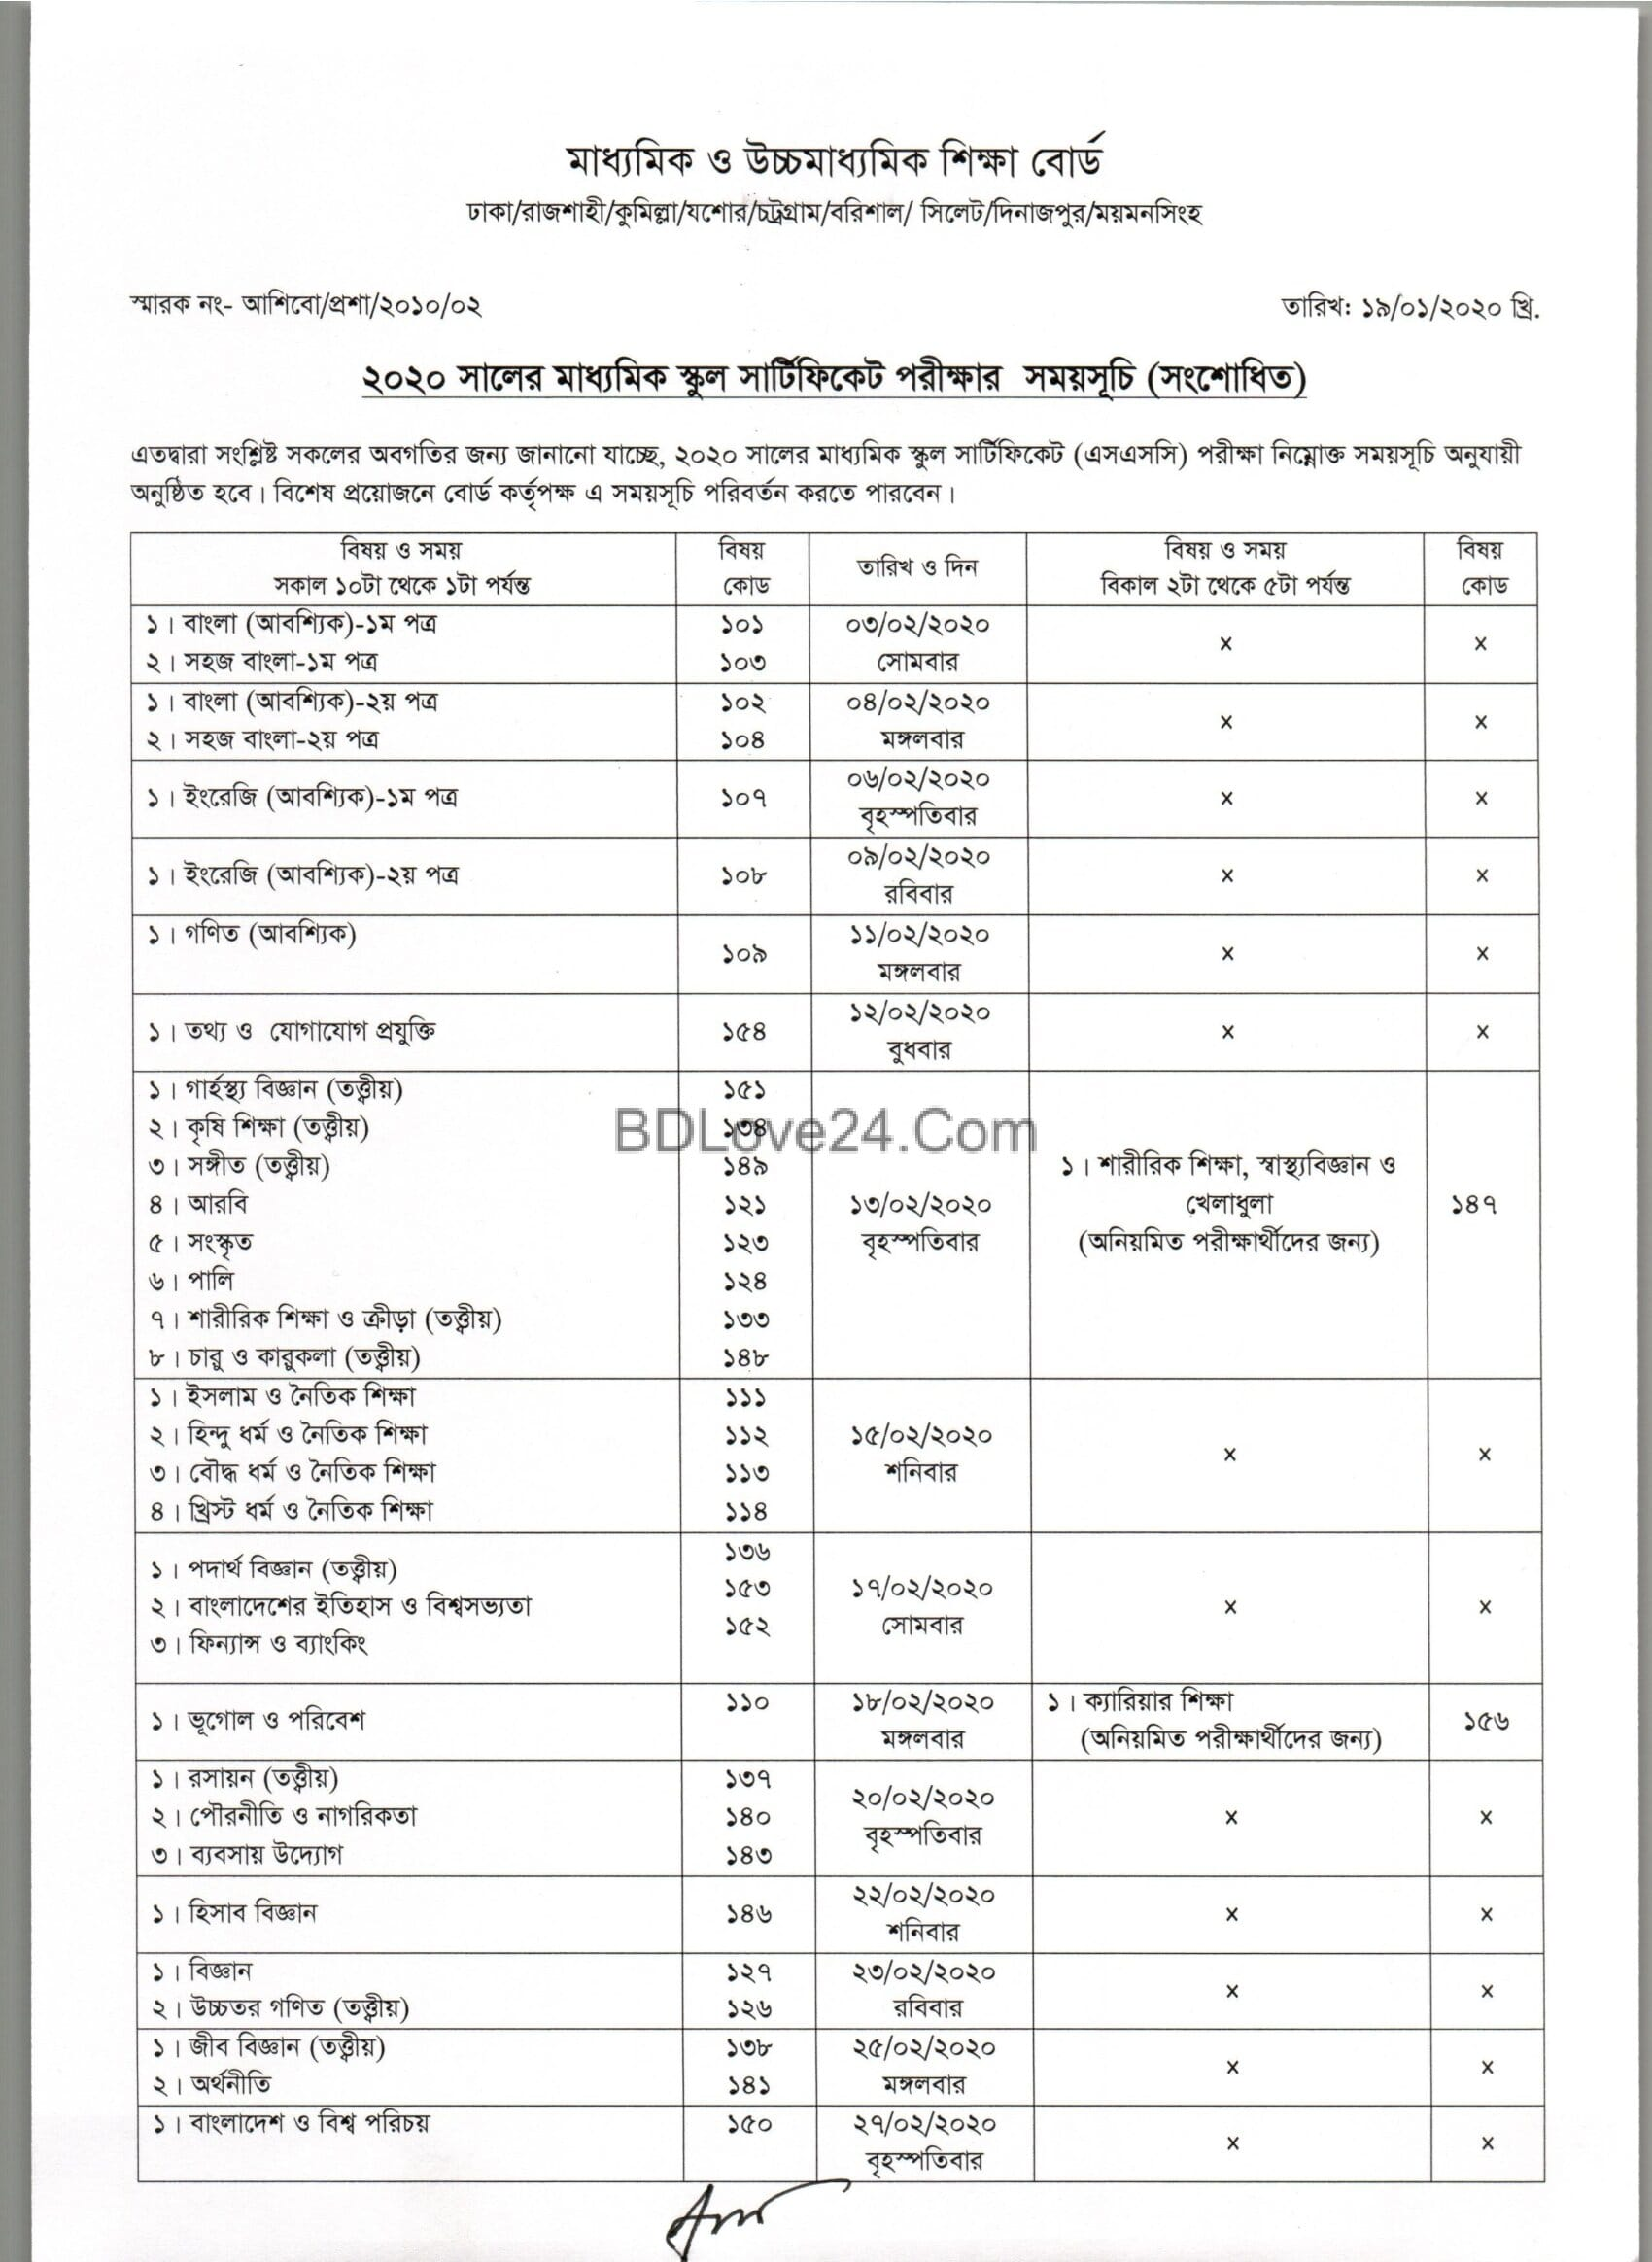 ssc rutine new 2020 0001 - SSC Exam Routine 2020 (new),Dakhil Exam Time Table 2020,SSC and Dakhil (New Routine)